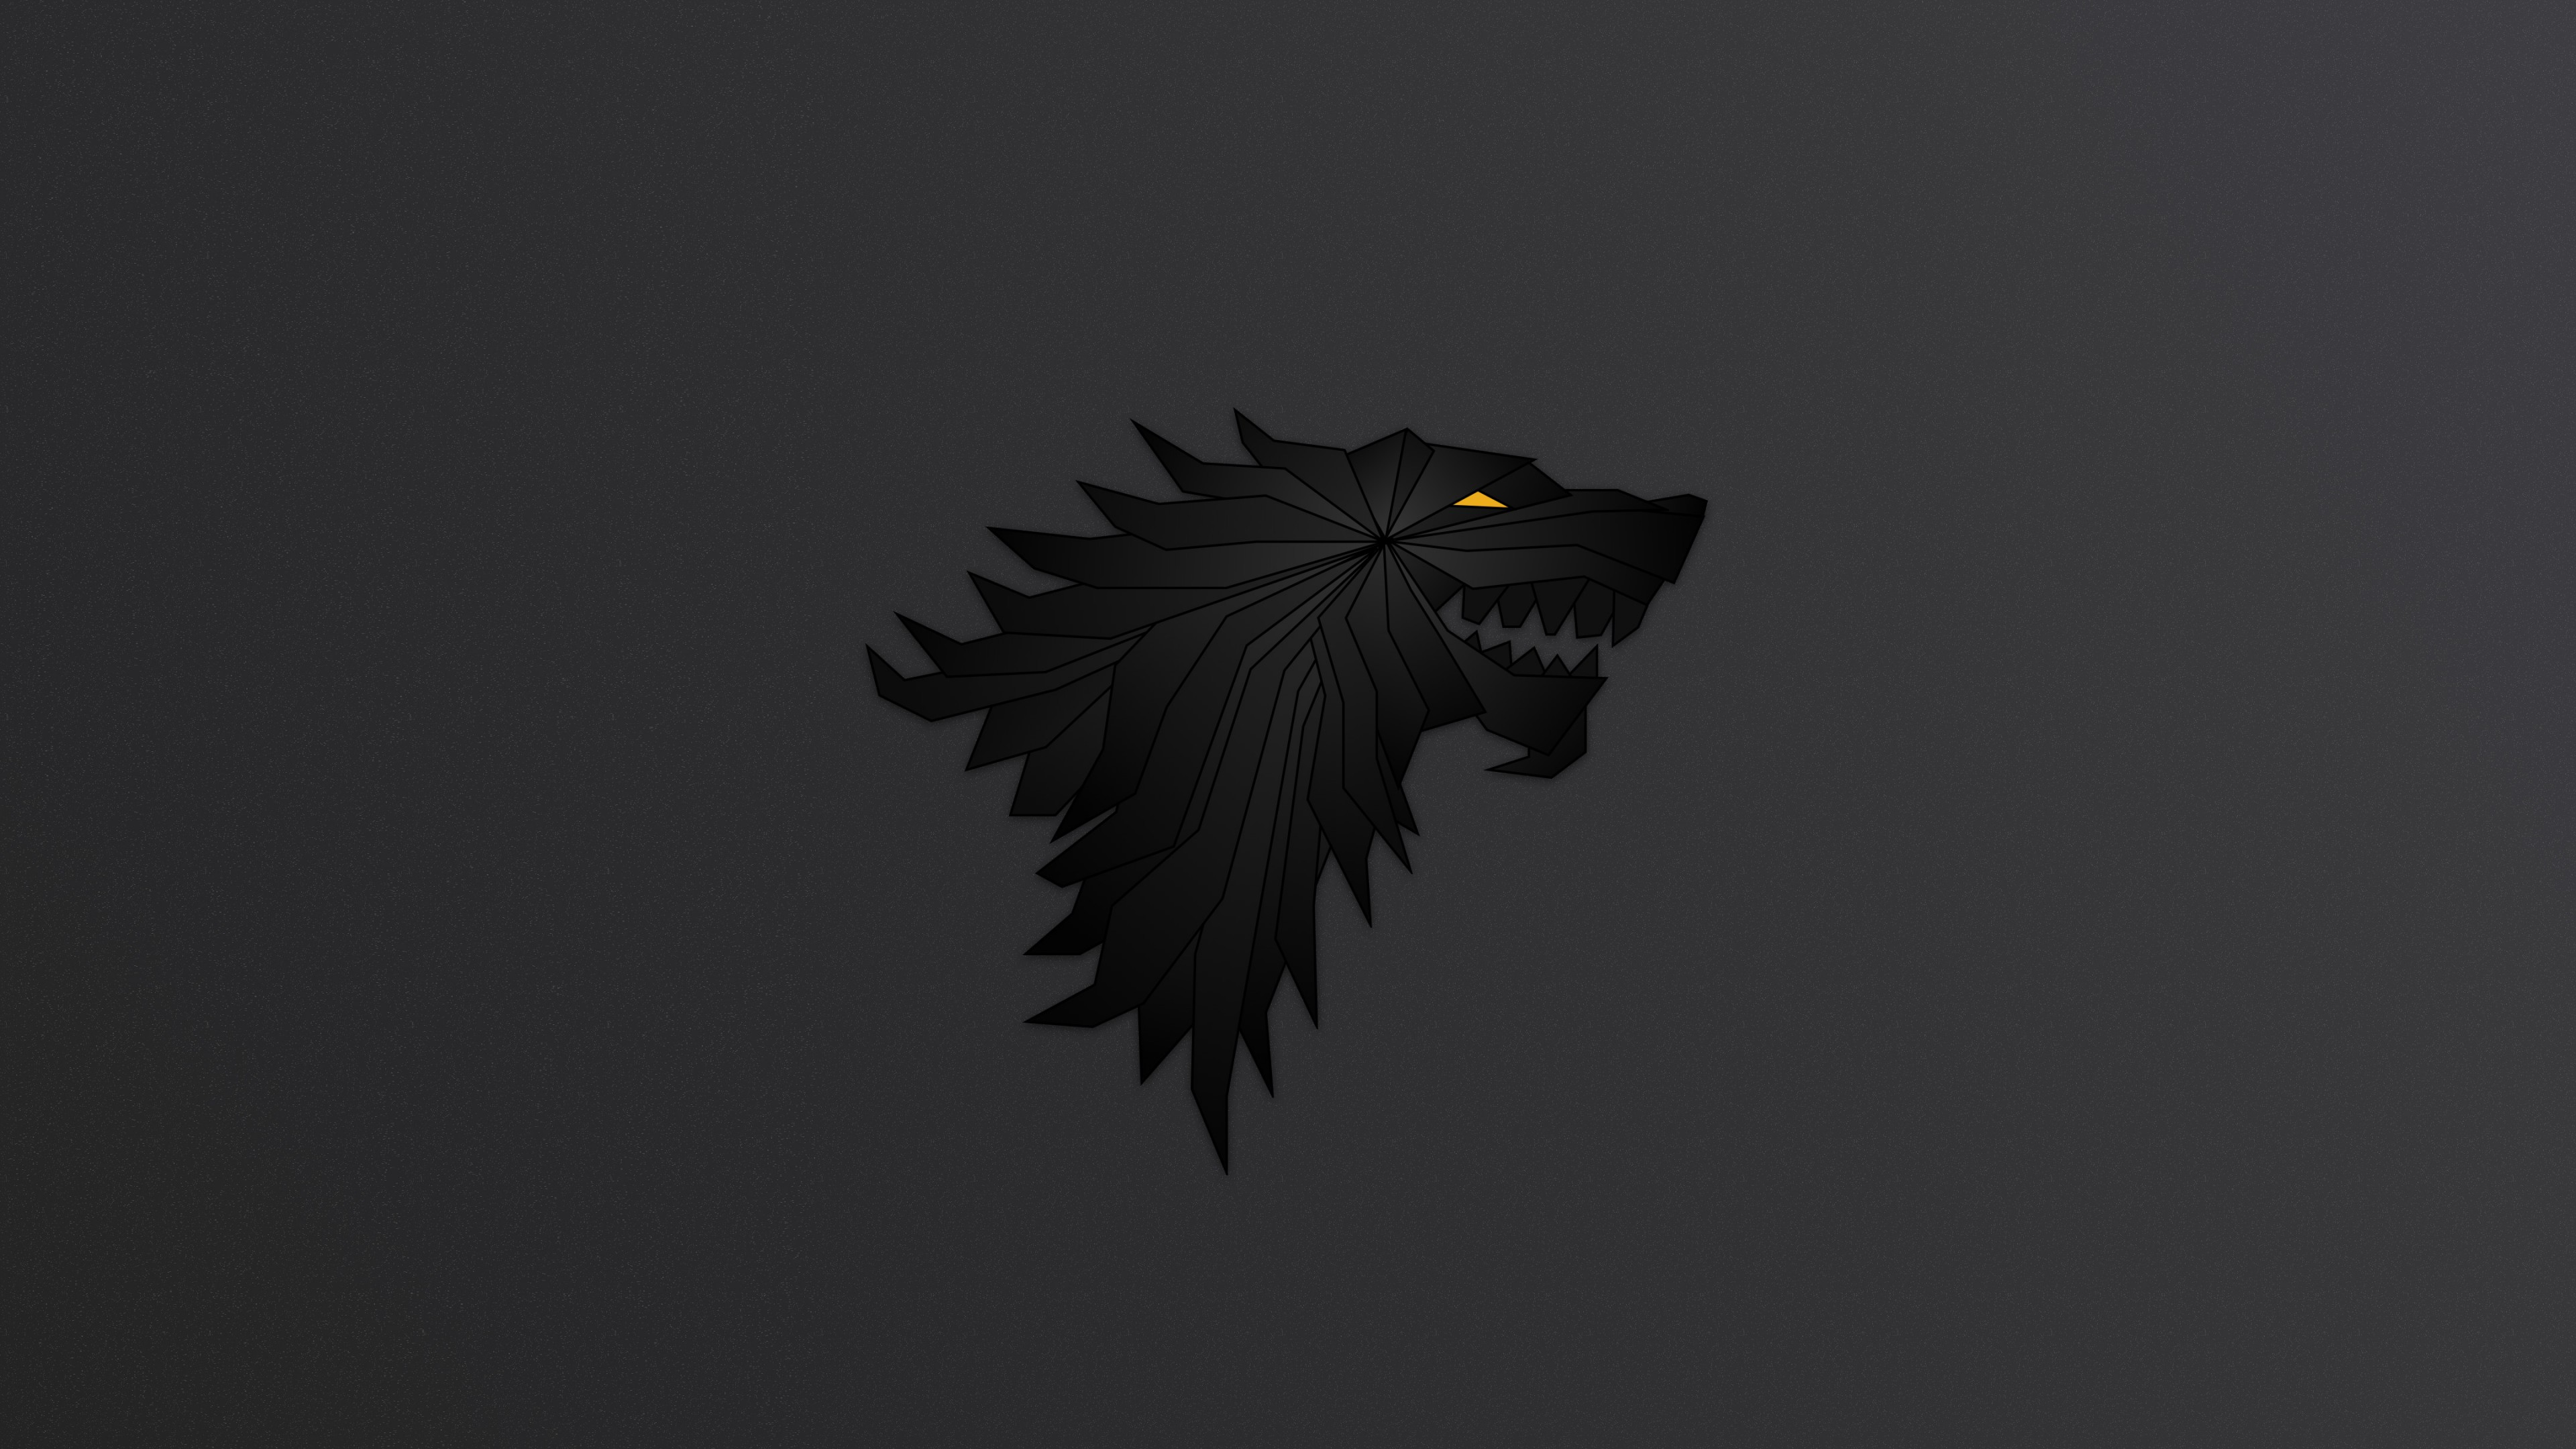 House Stark Game Of Thrones Minimalism, HD Tv Shows, 4k ...